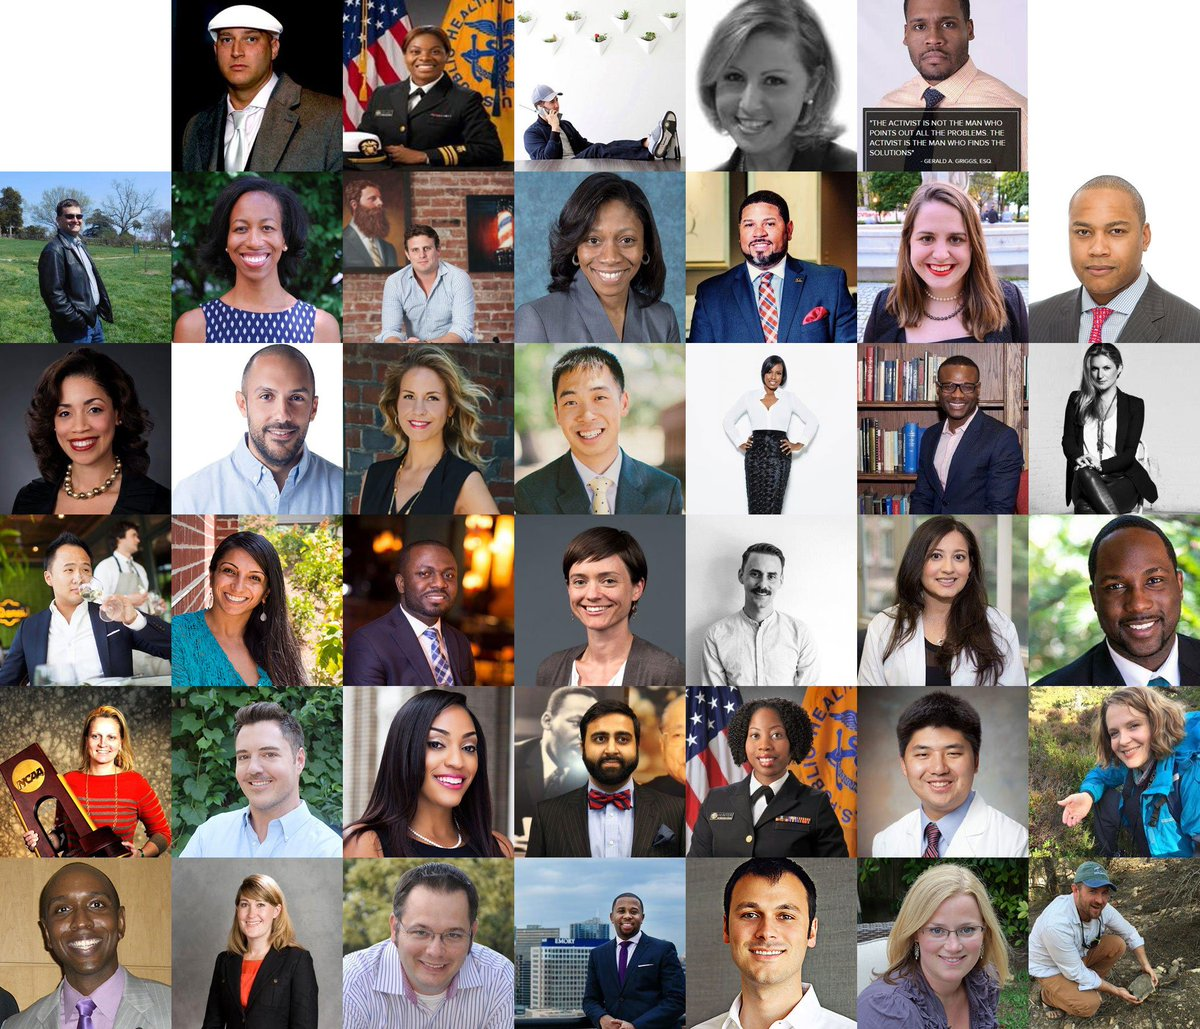 Honored to be included among the ranks of these #emoryalumni superstars!